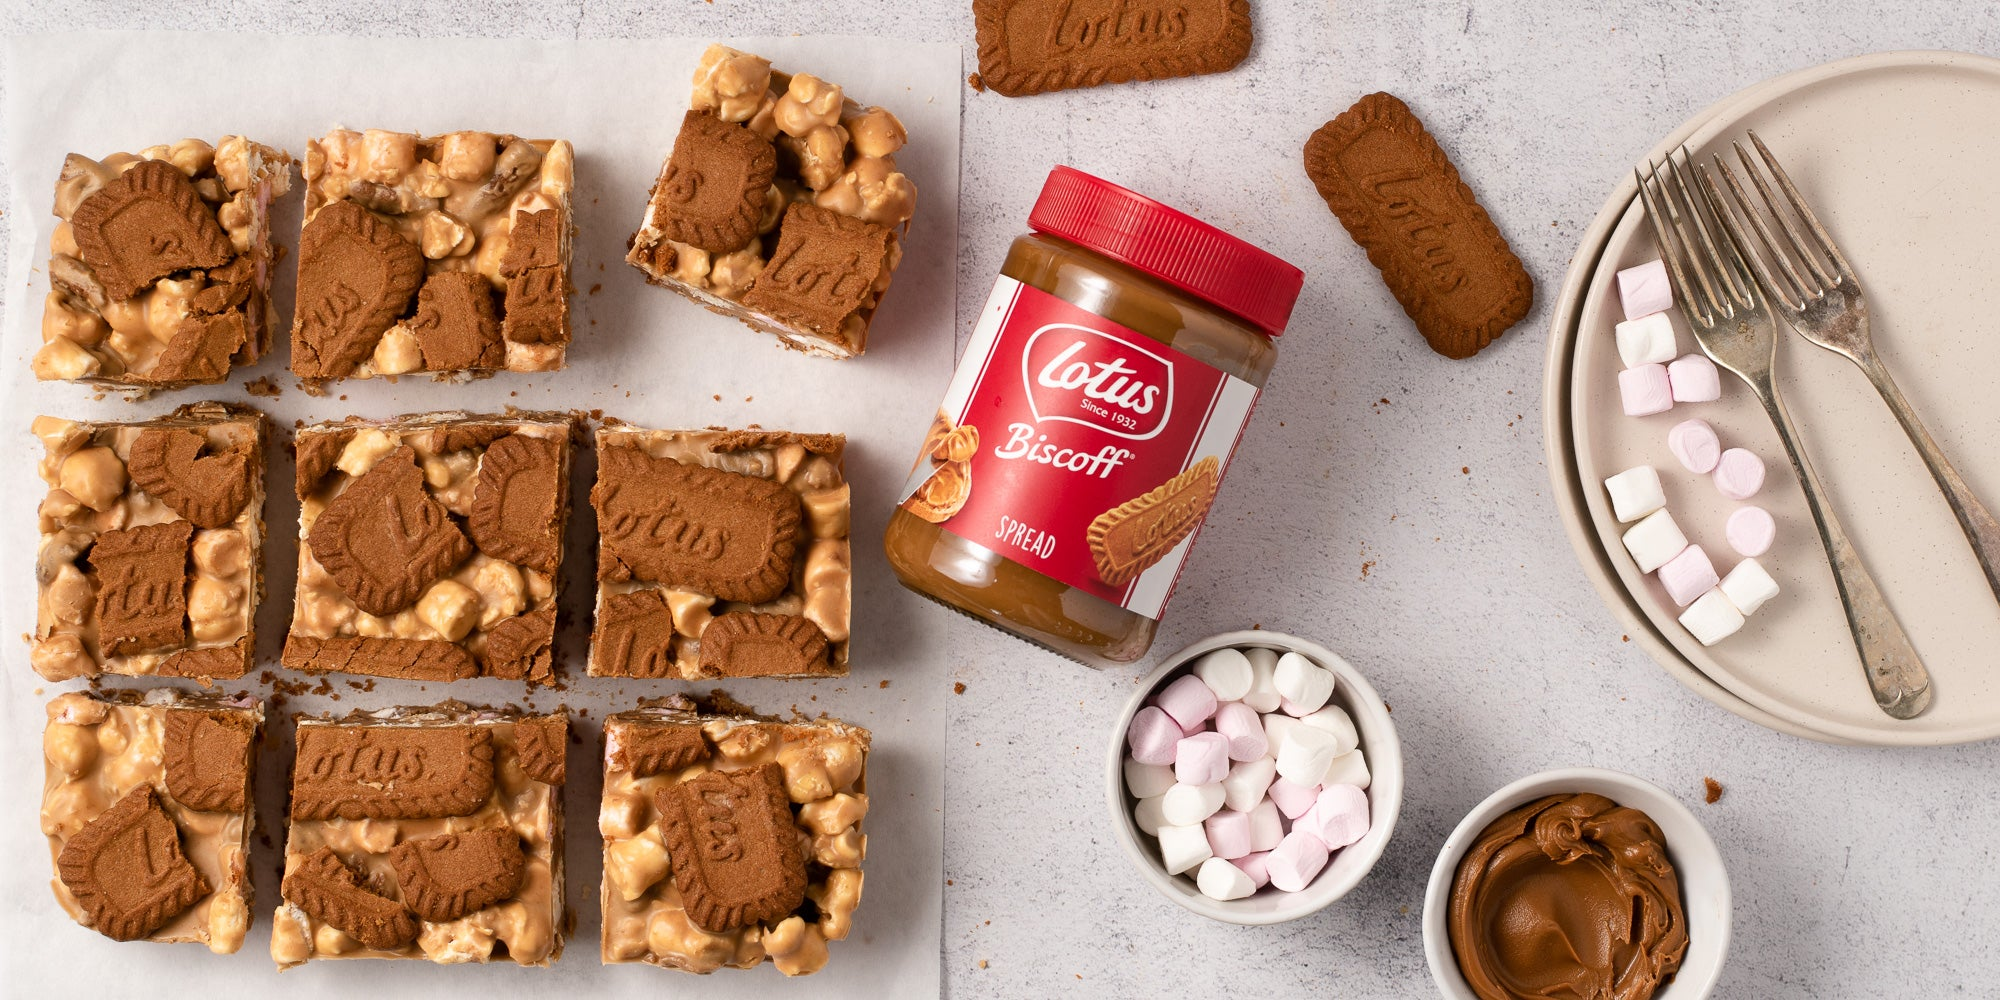 Biscoff rocky road next to lotus biscoff spread and a bowl of marshmallows